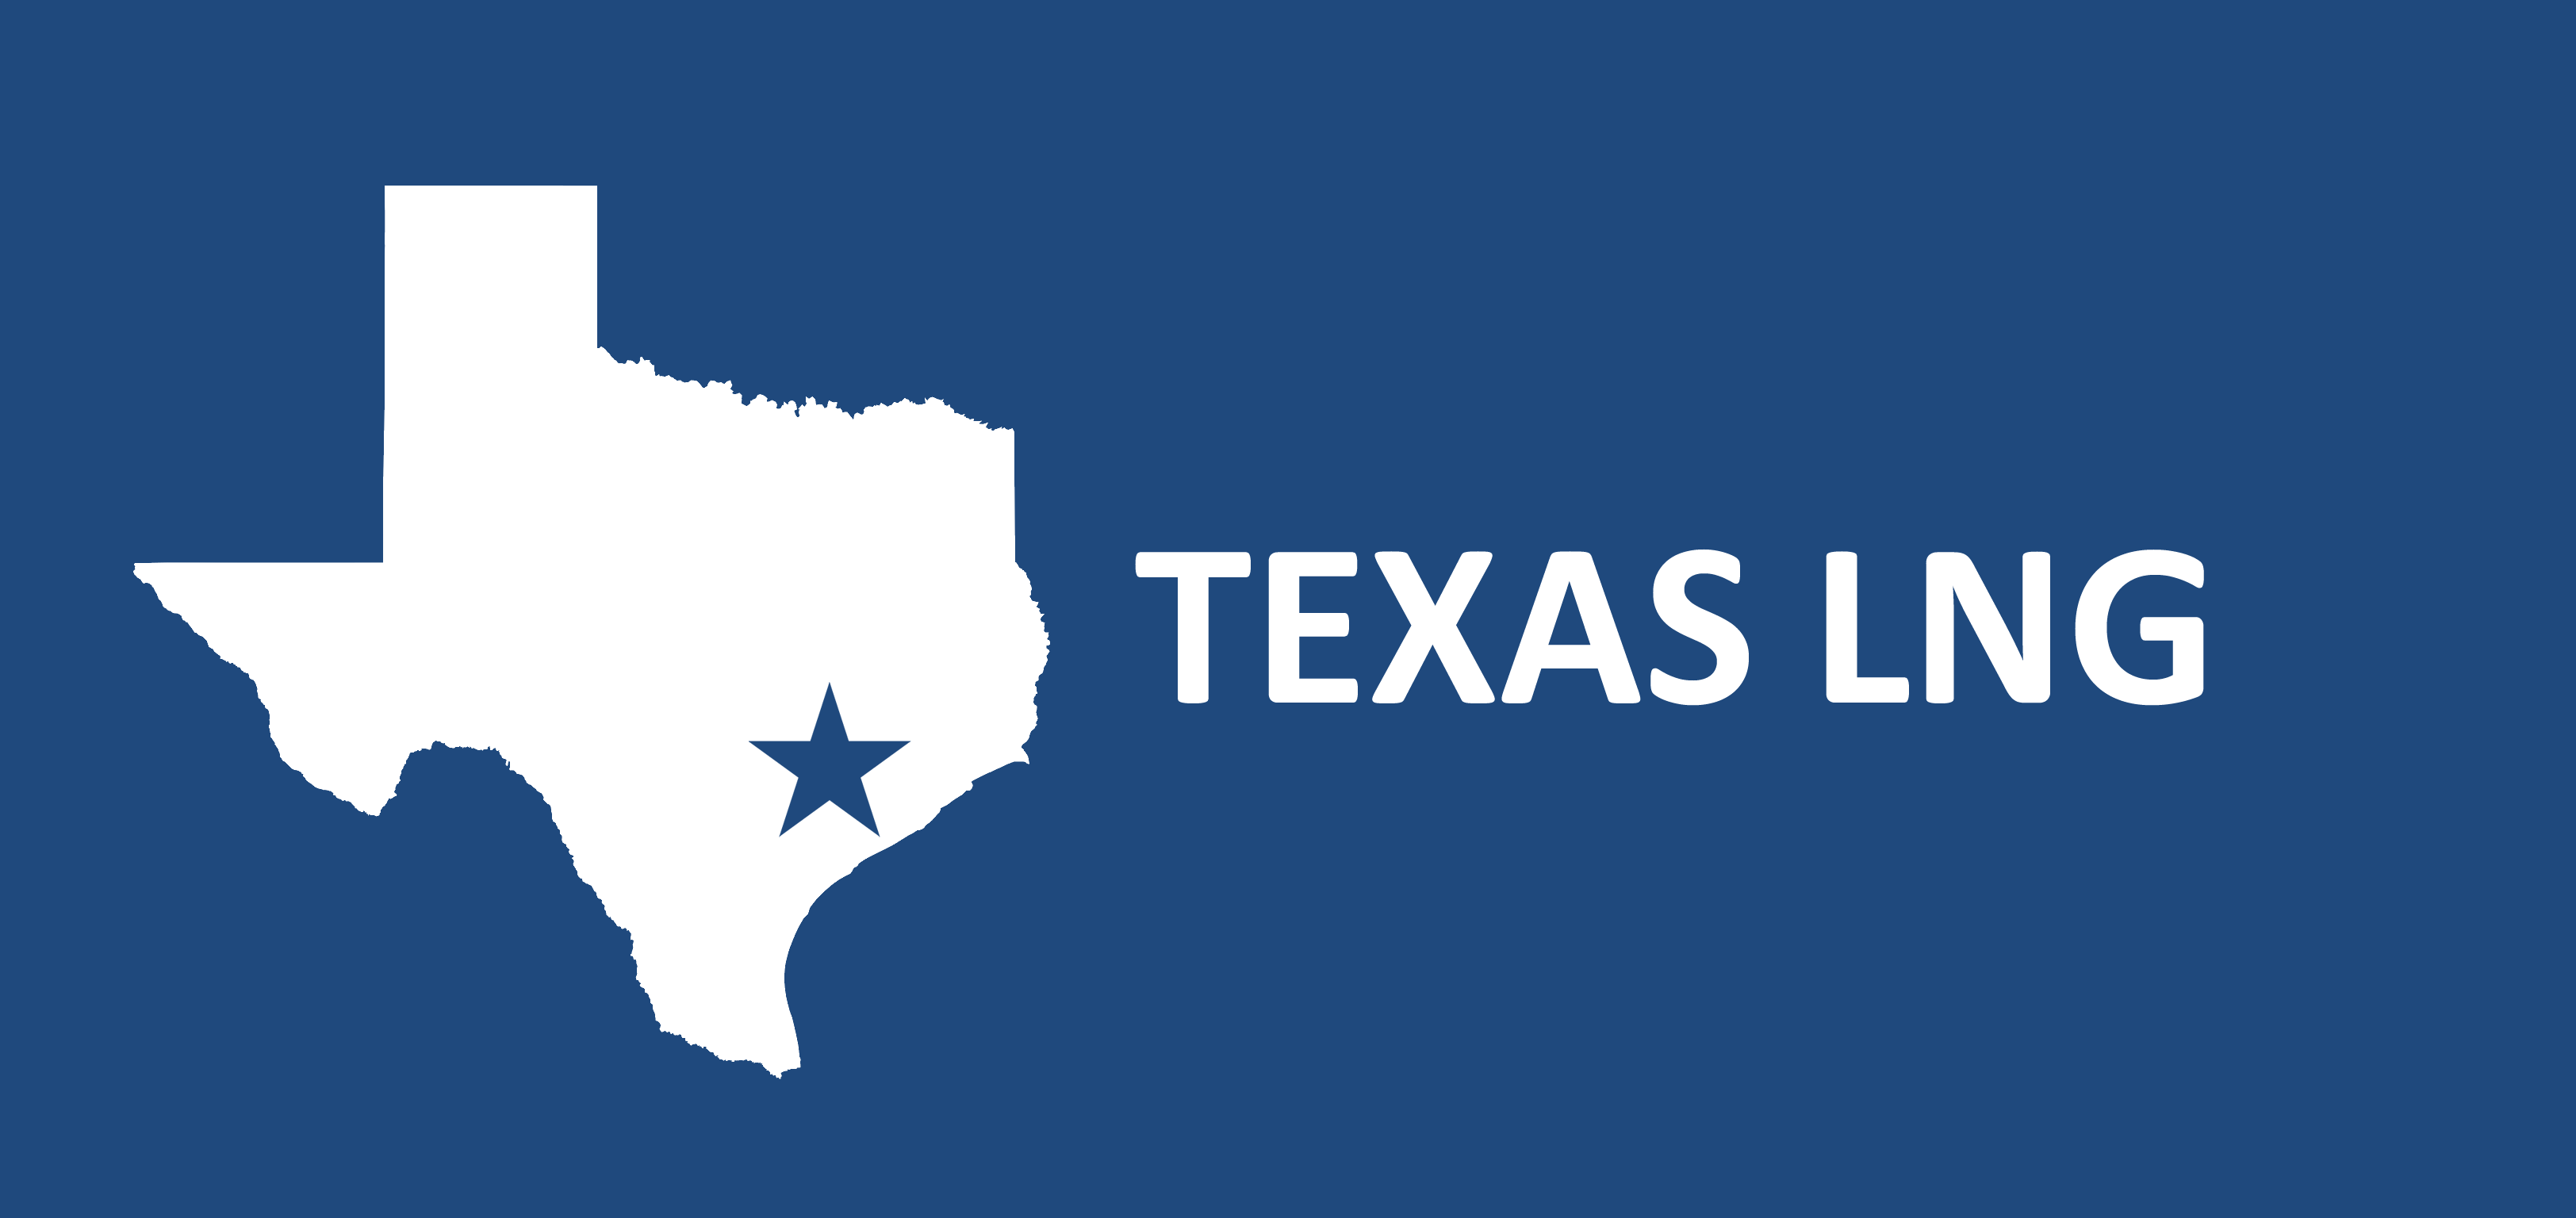 Texas LNG Receives United States Federal Energy Regulatory Commission Final Environmental Impact Statement